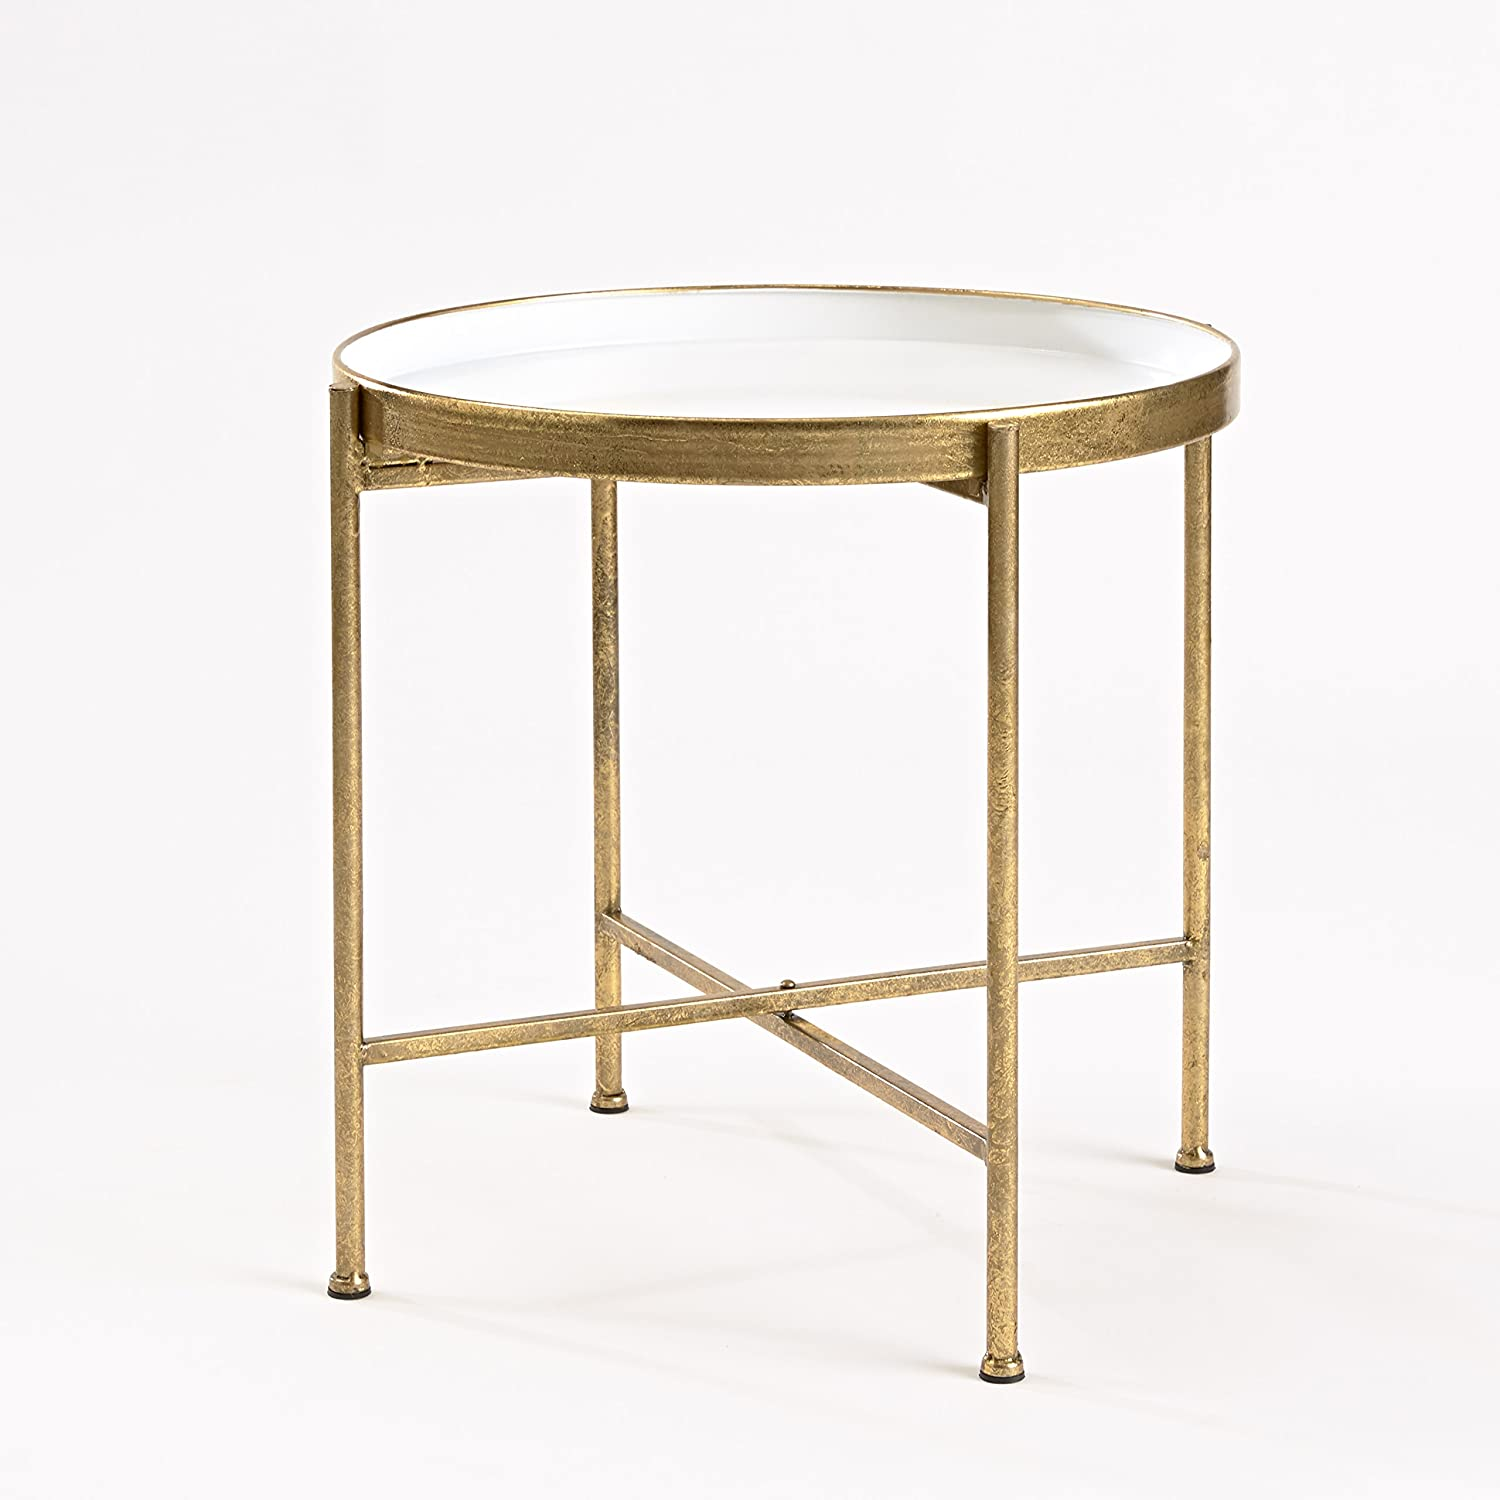 InnerSpace Luxury Products Gild Pop Up Tray Table, Large, White